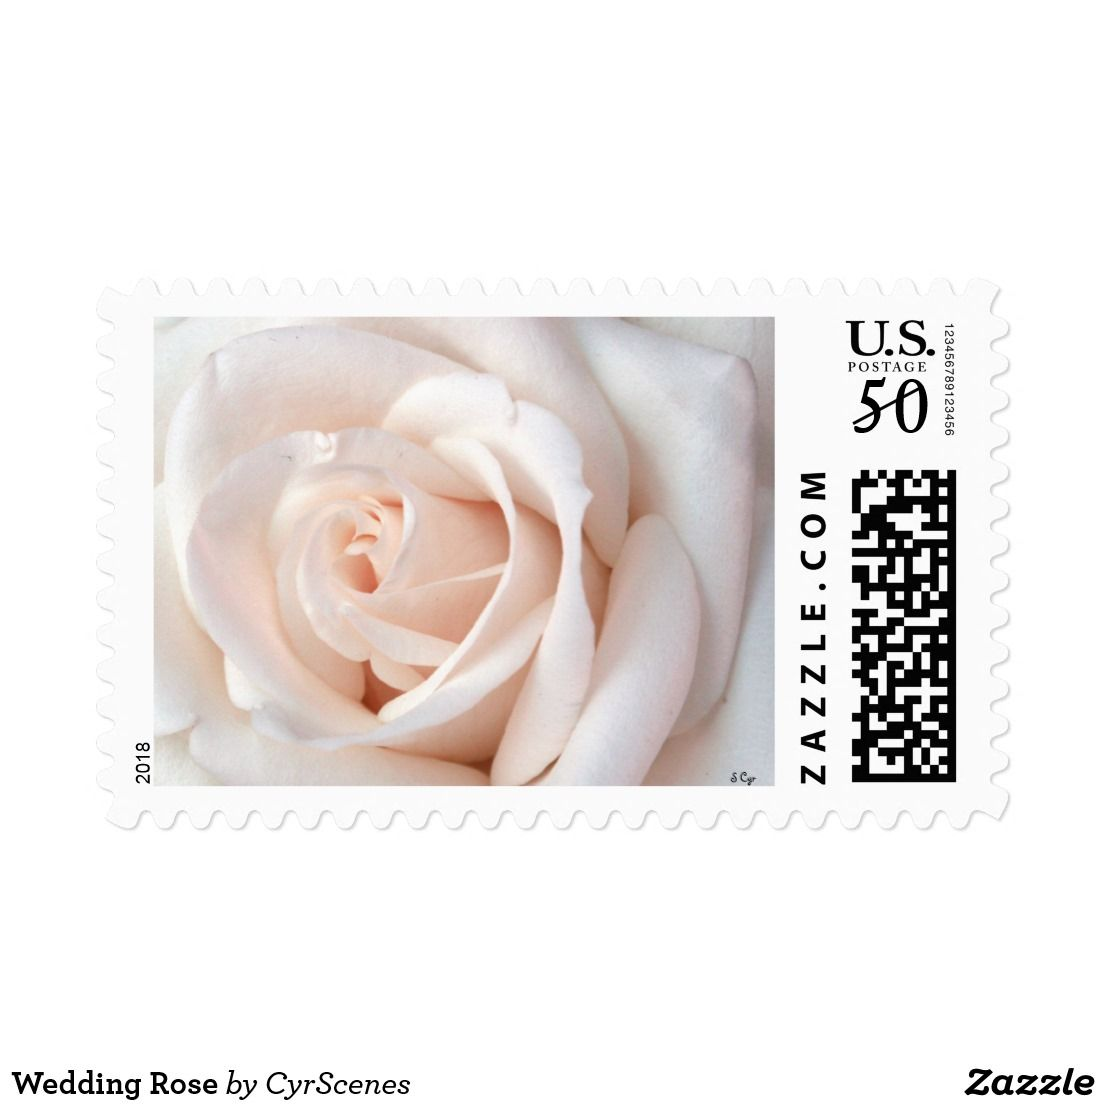 Wedding Rose Postage In Soft Pink It S The Perfect Usps Stamp For Your Invitations That Includes Bridal Shower